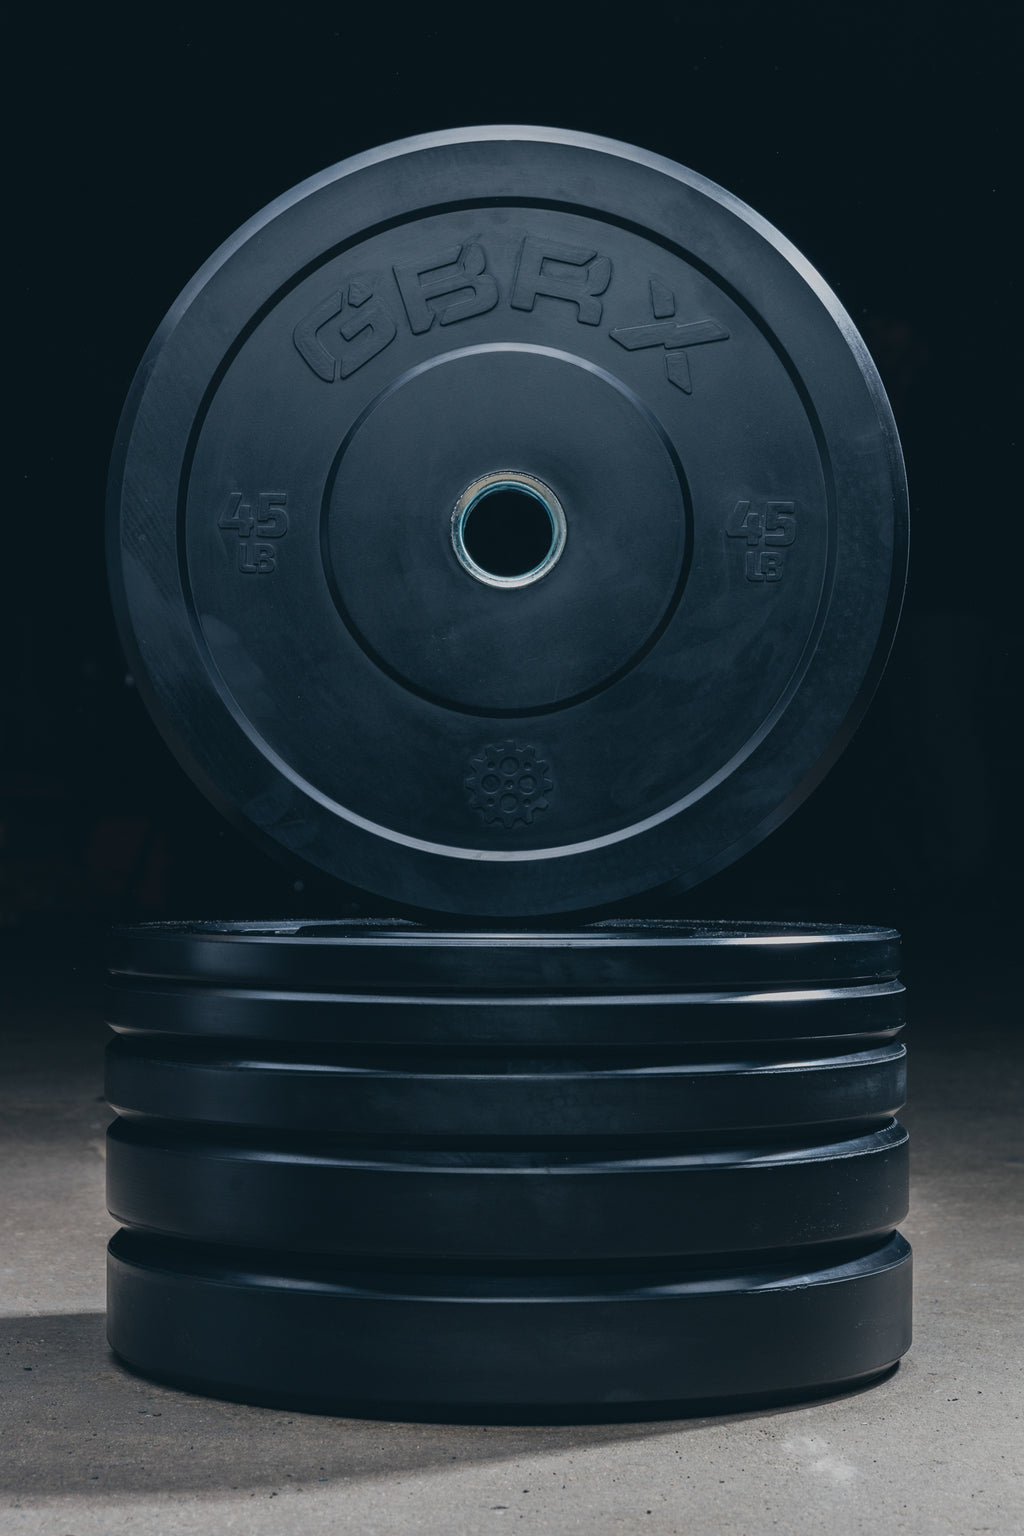 GBRX Black Bumper Plates 260 lbs Set